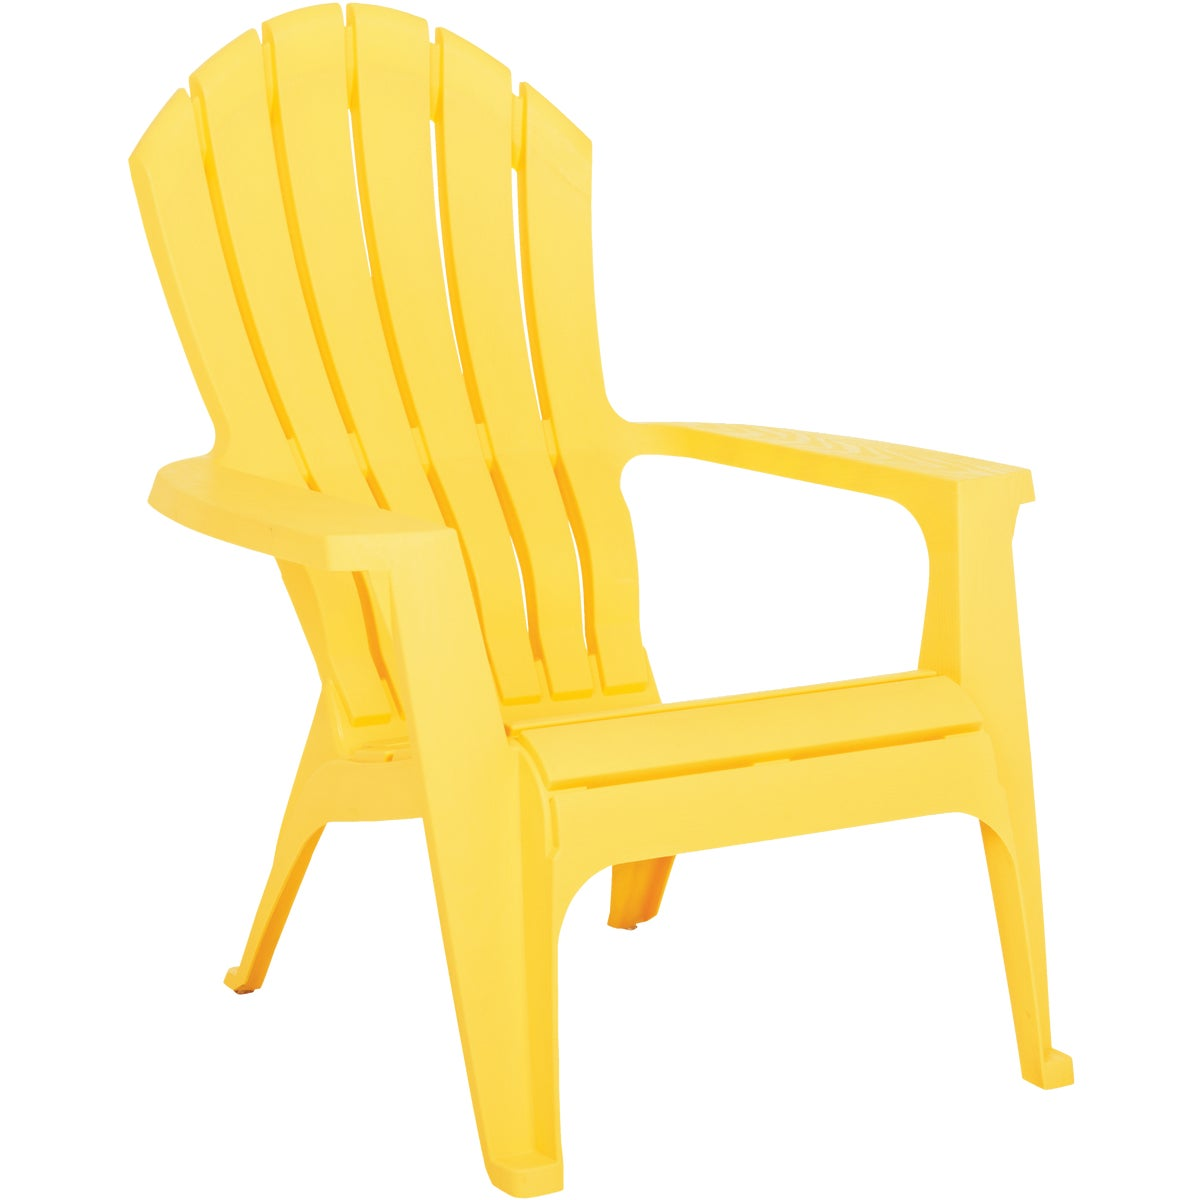 YELLOW ADIRONDACK - 8371-19-4708 by Adams Mfg Patio Furn